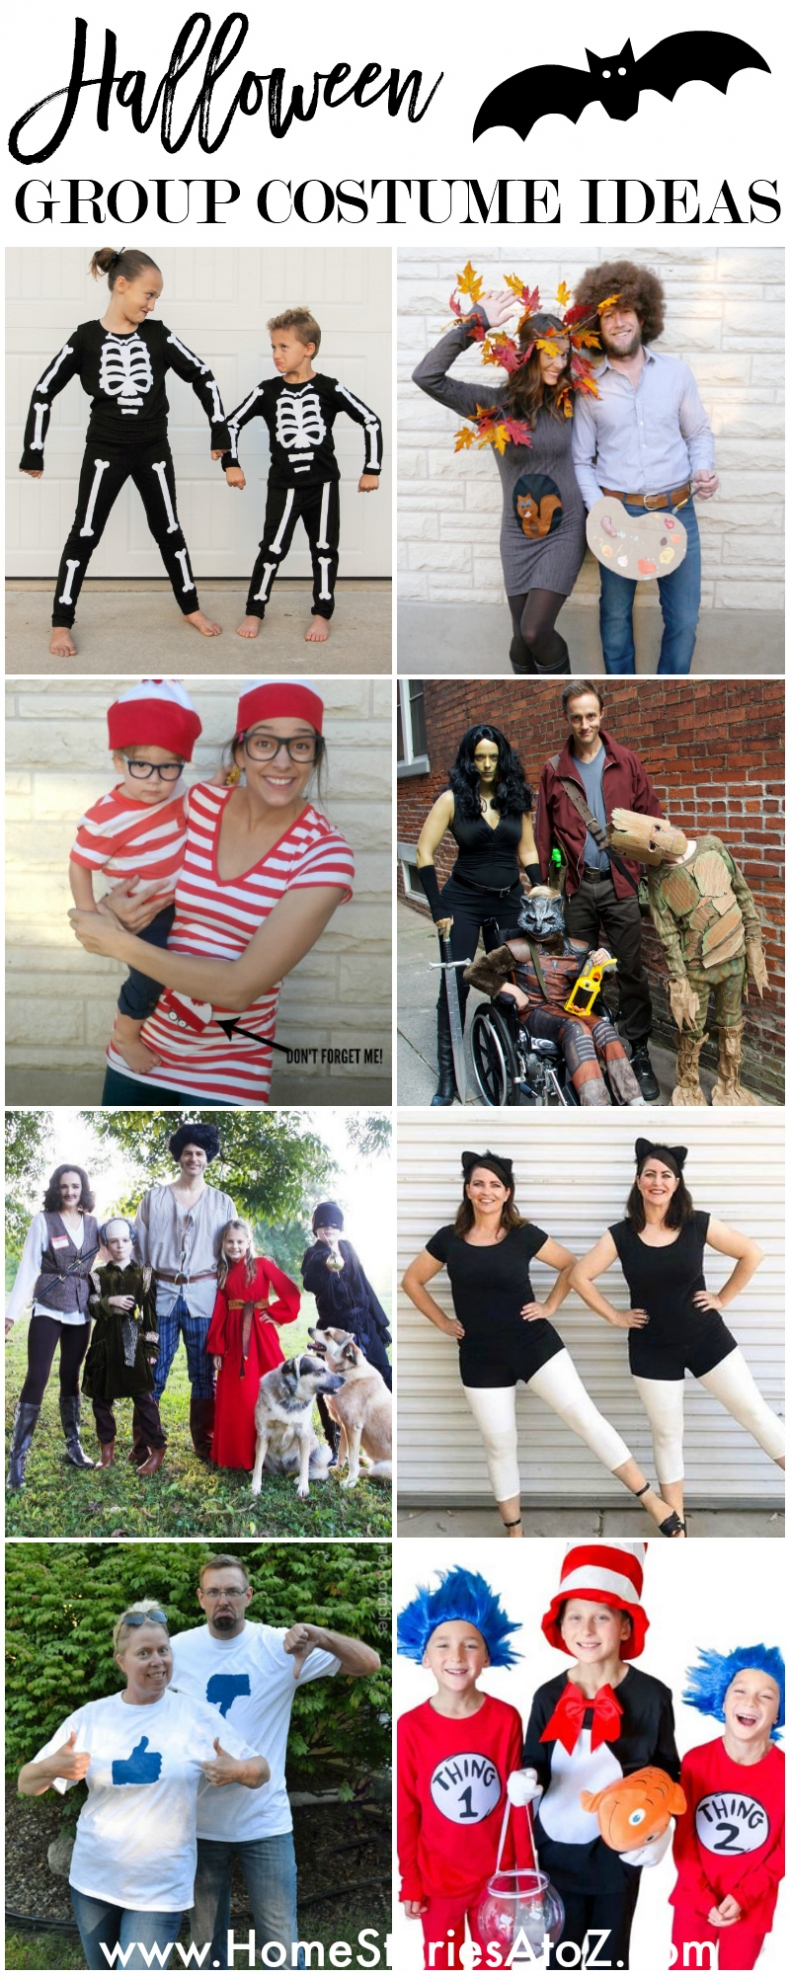 Halloween Costume Ideas for a Group